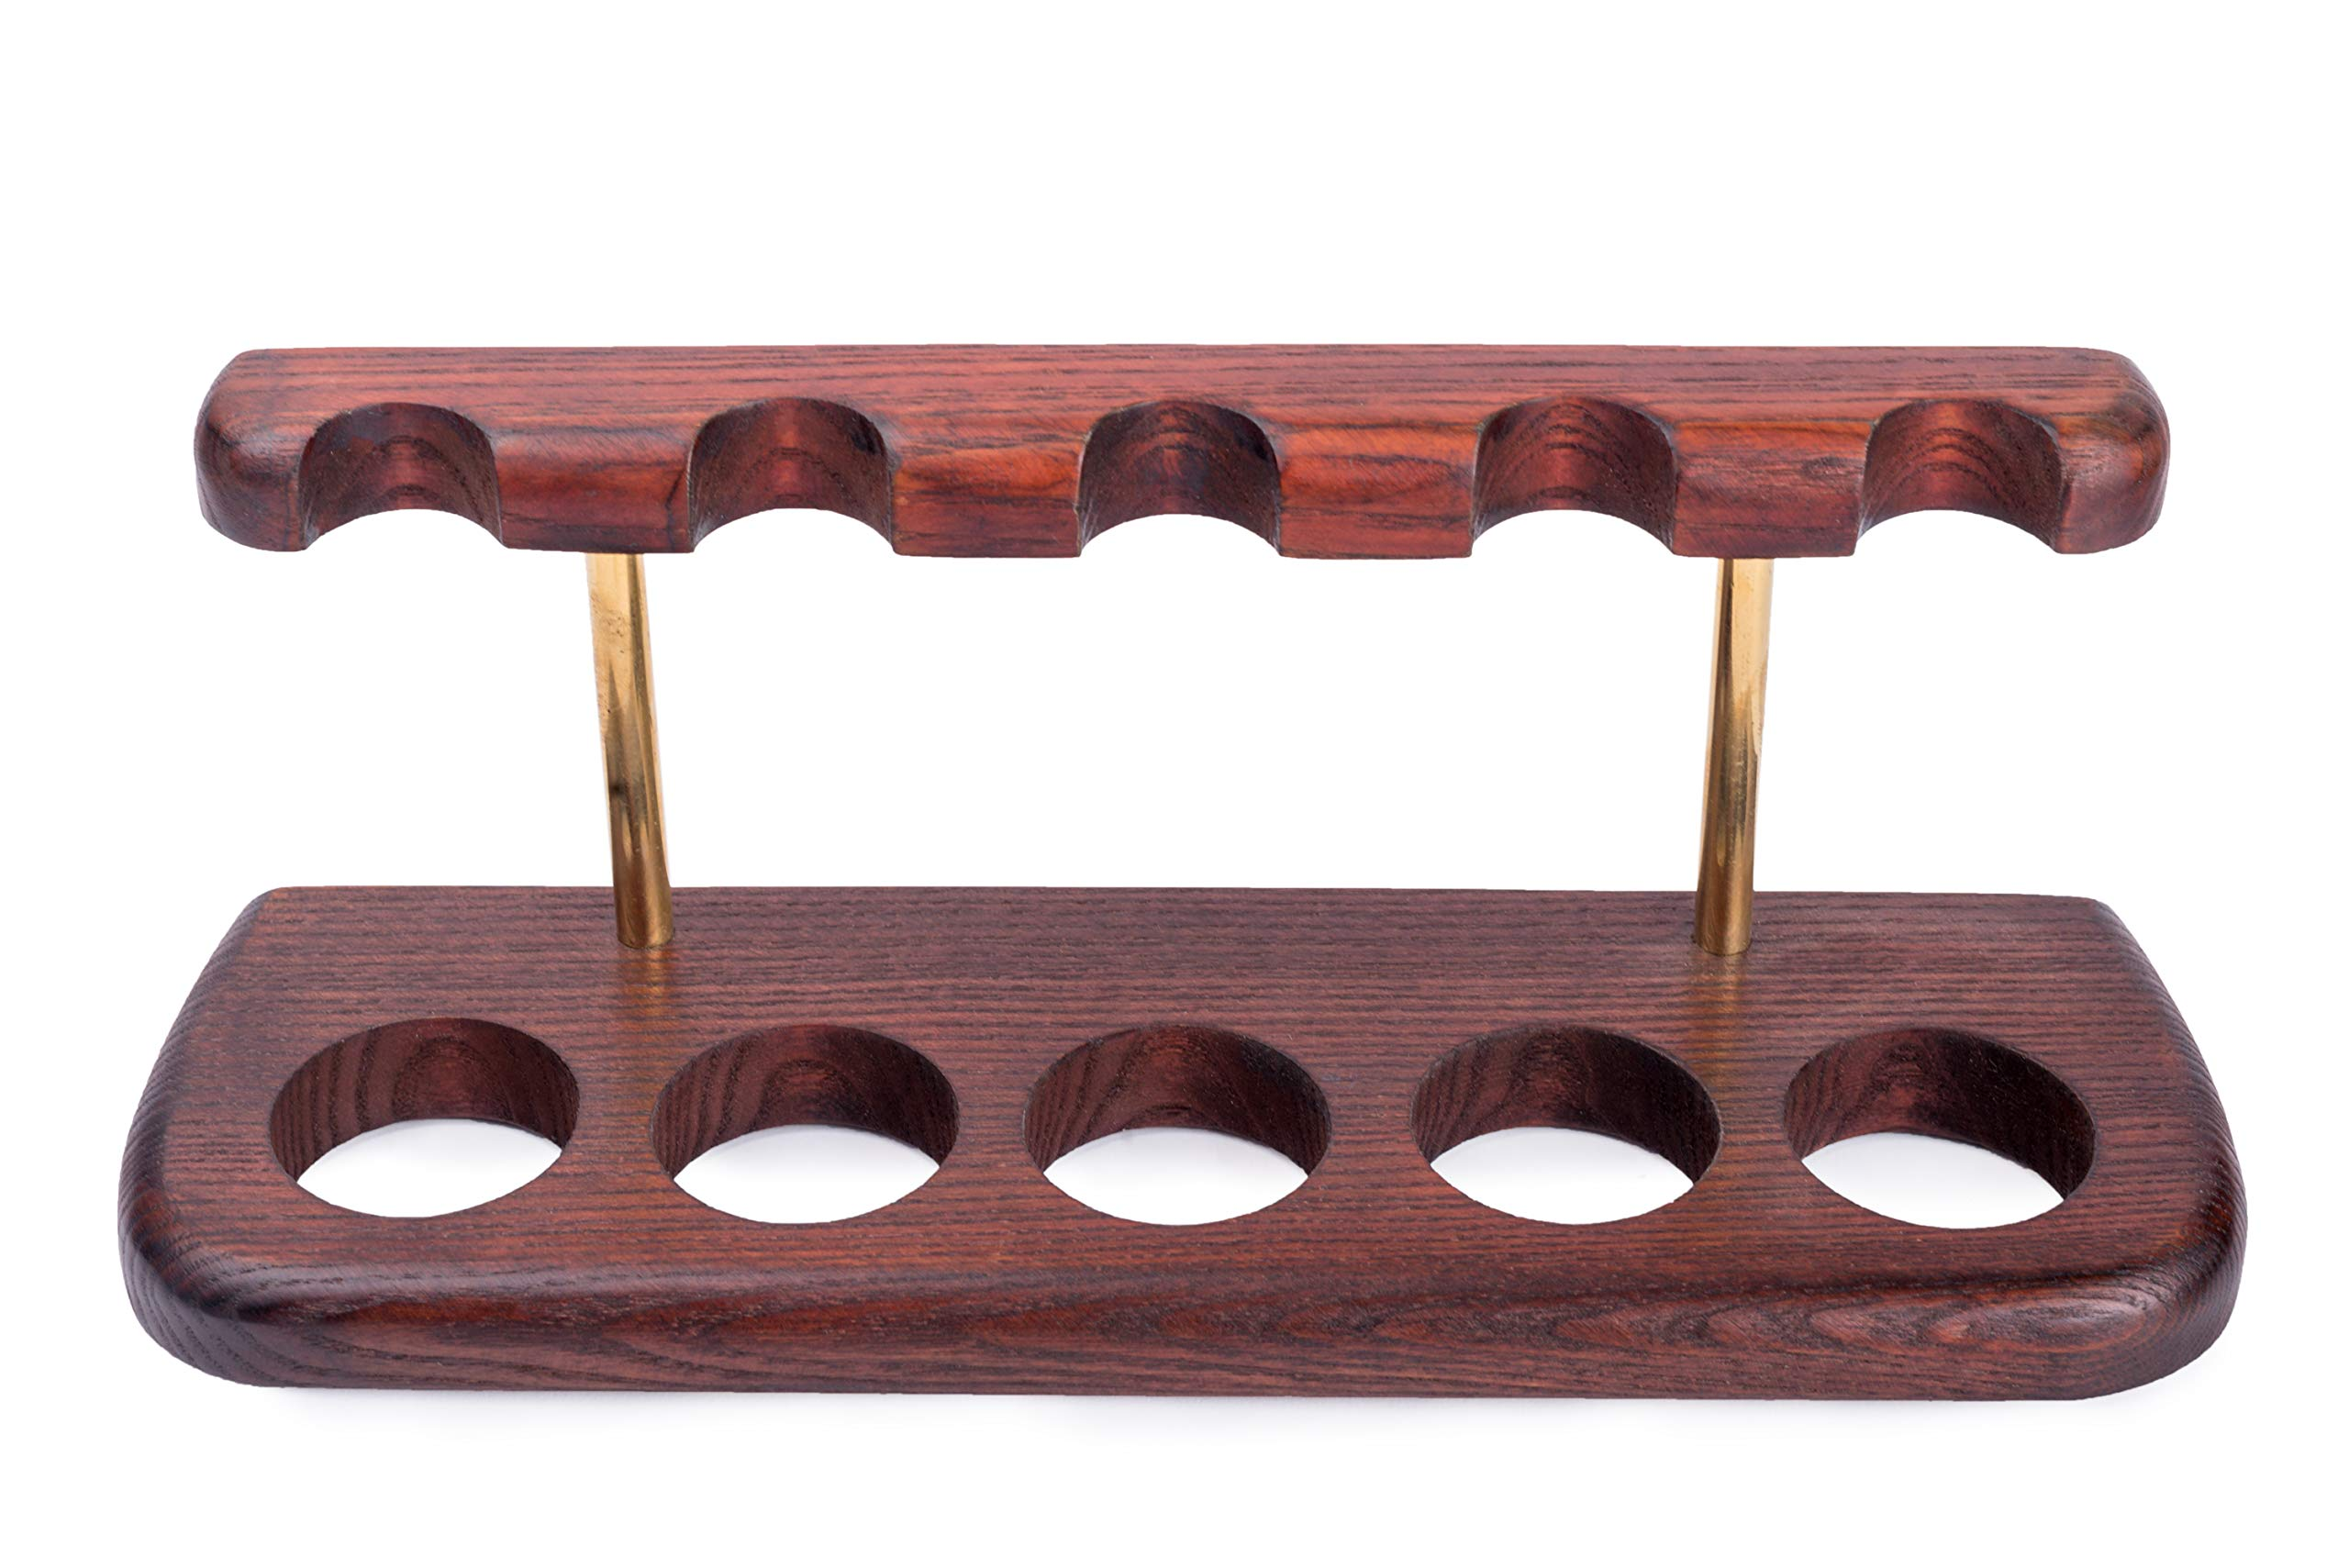 Tobacco Pipes Wooden Display Stand Rack Hold ''Arch V'' For 5 Smoking Pipes by Dr.Watson